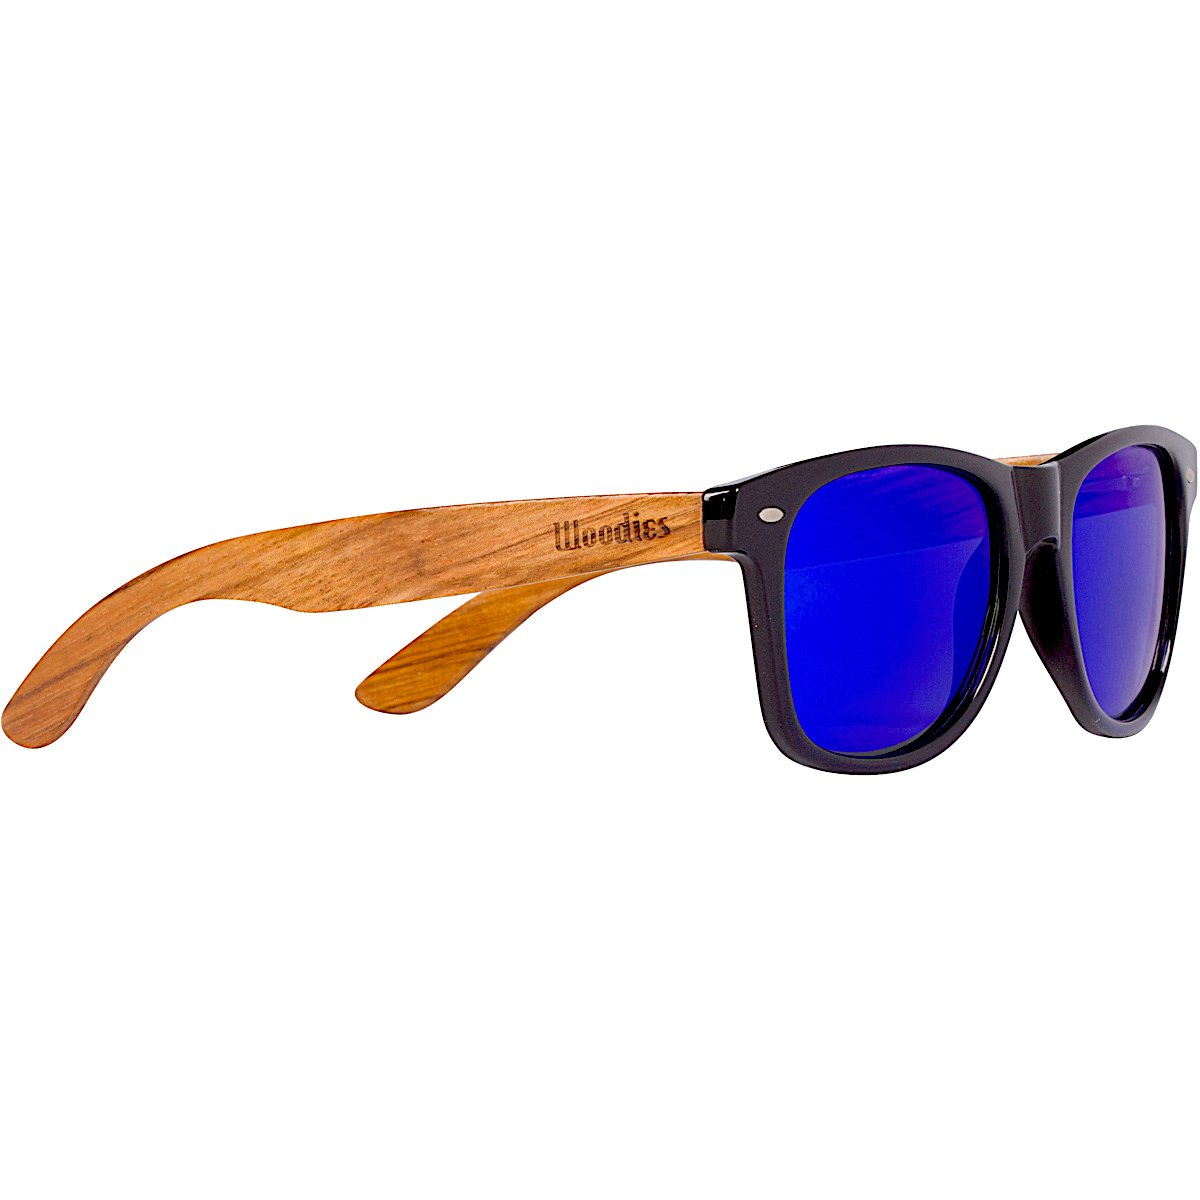 WOODIES Zebra Wood Sunglasses with Blue Mirror Polarized Lens by Woodies